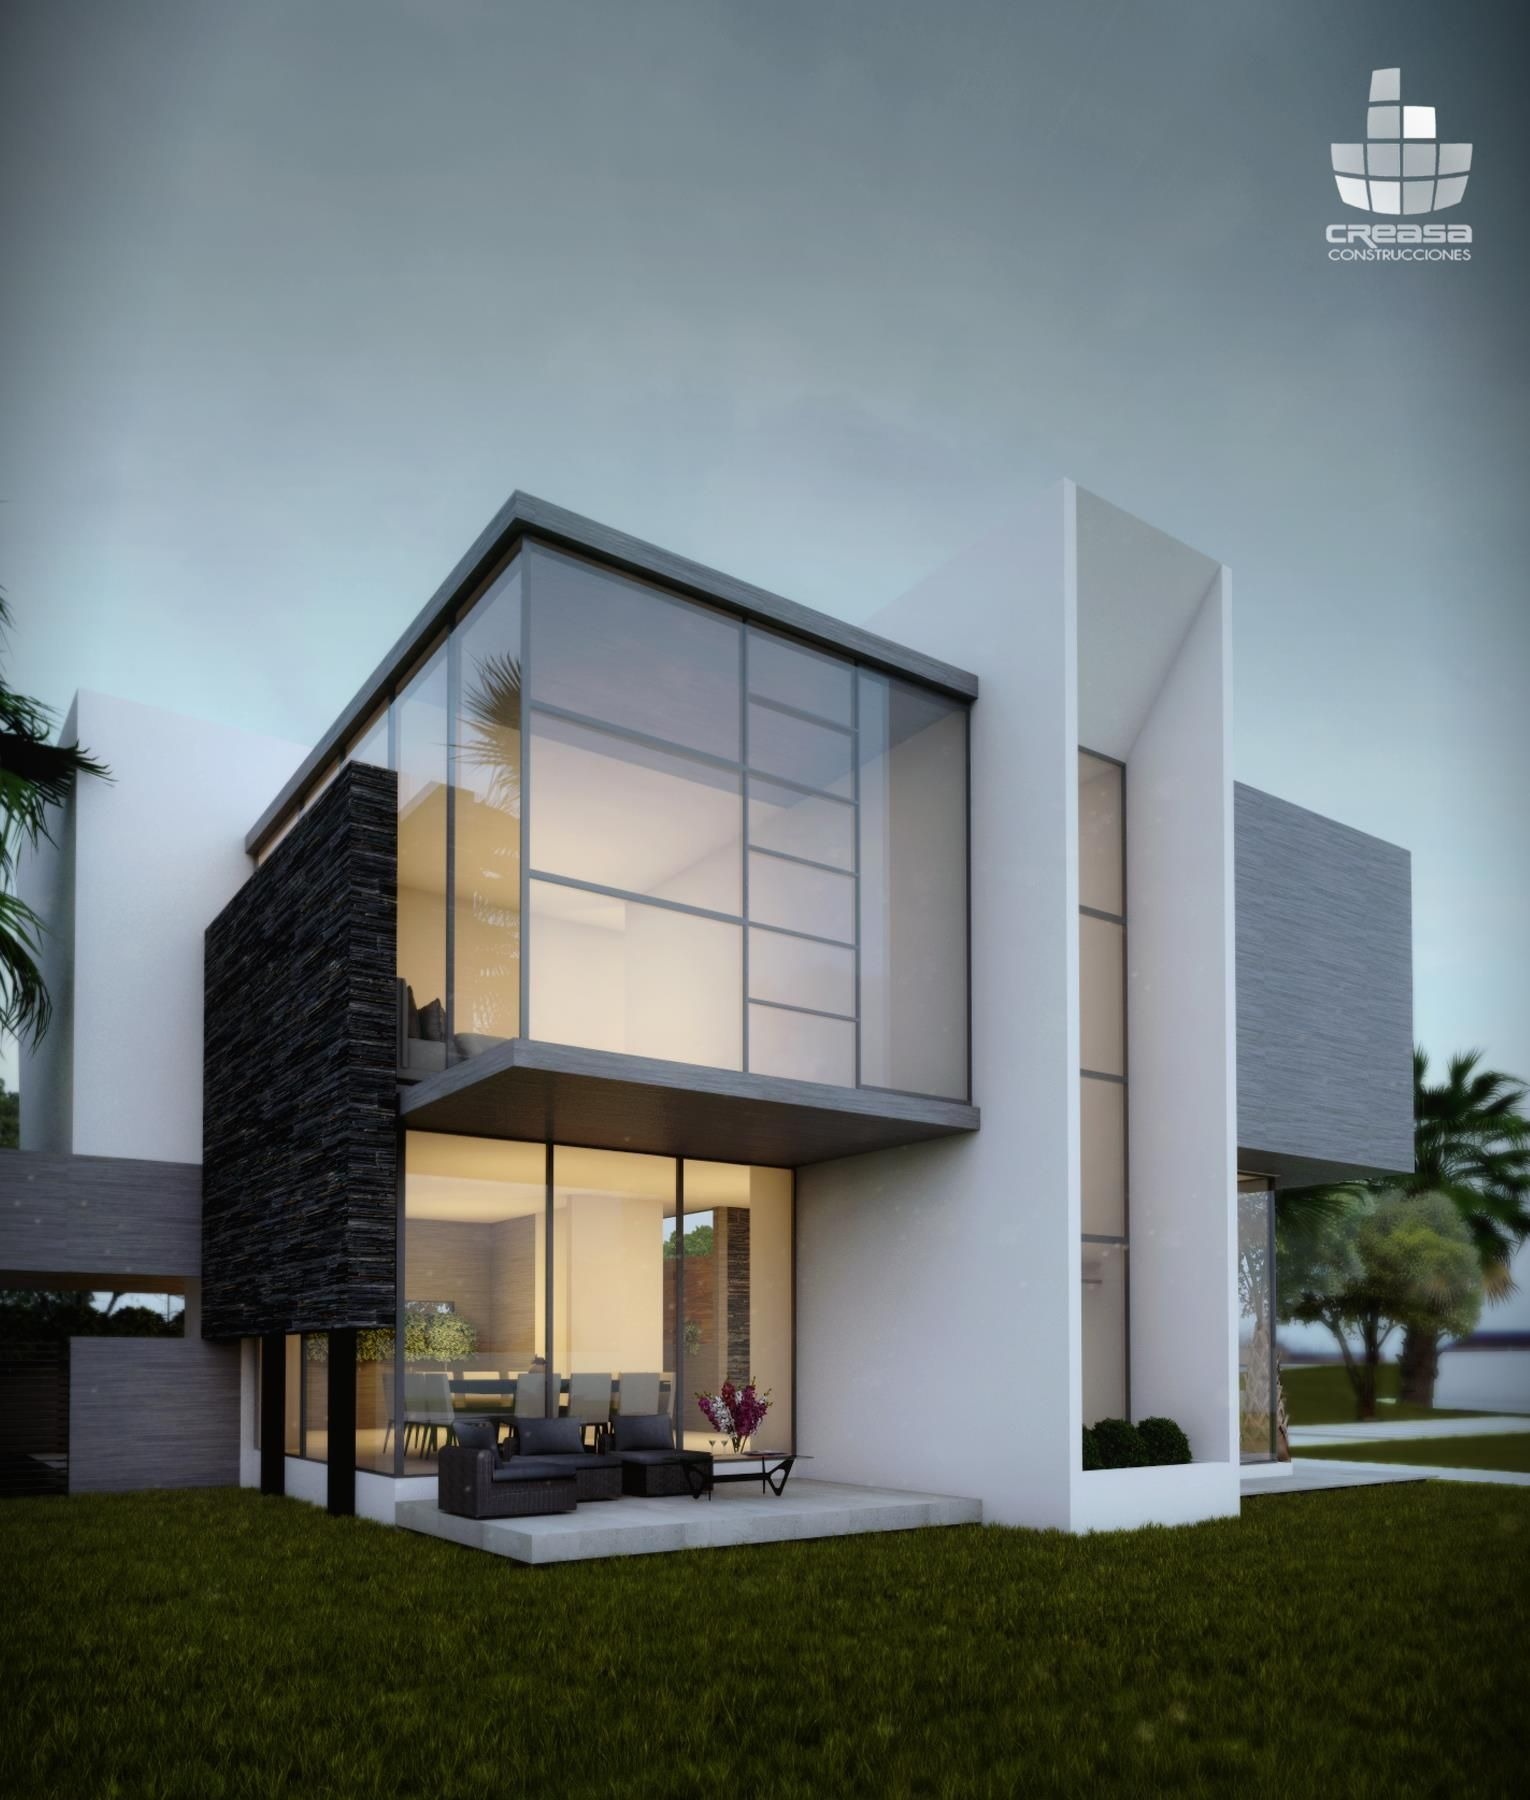 Creasa modern architecture pinterest villas house for Modern villa house design